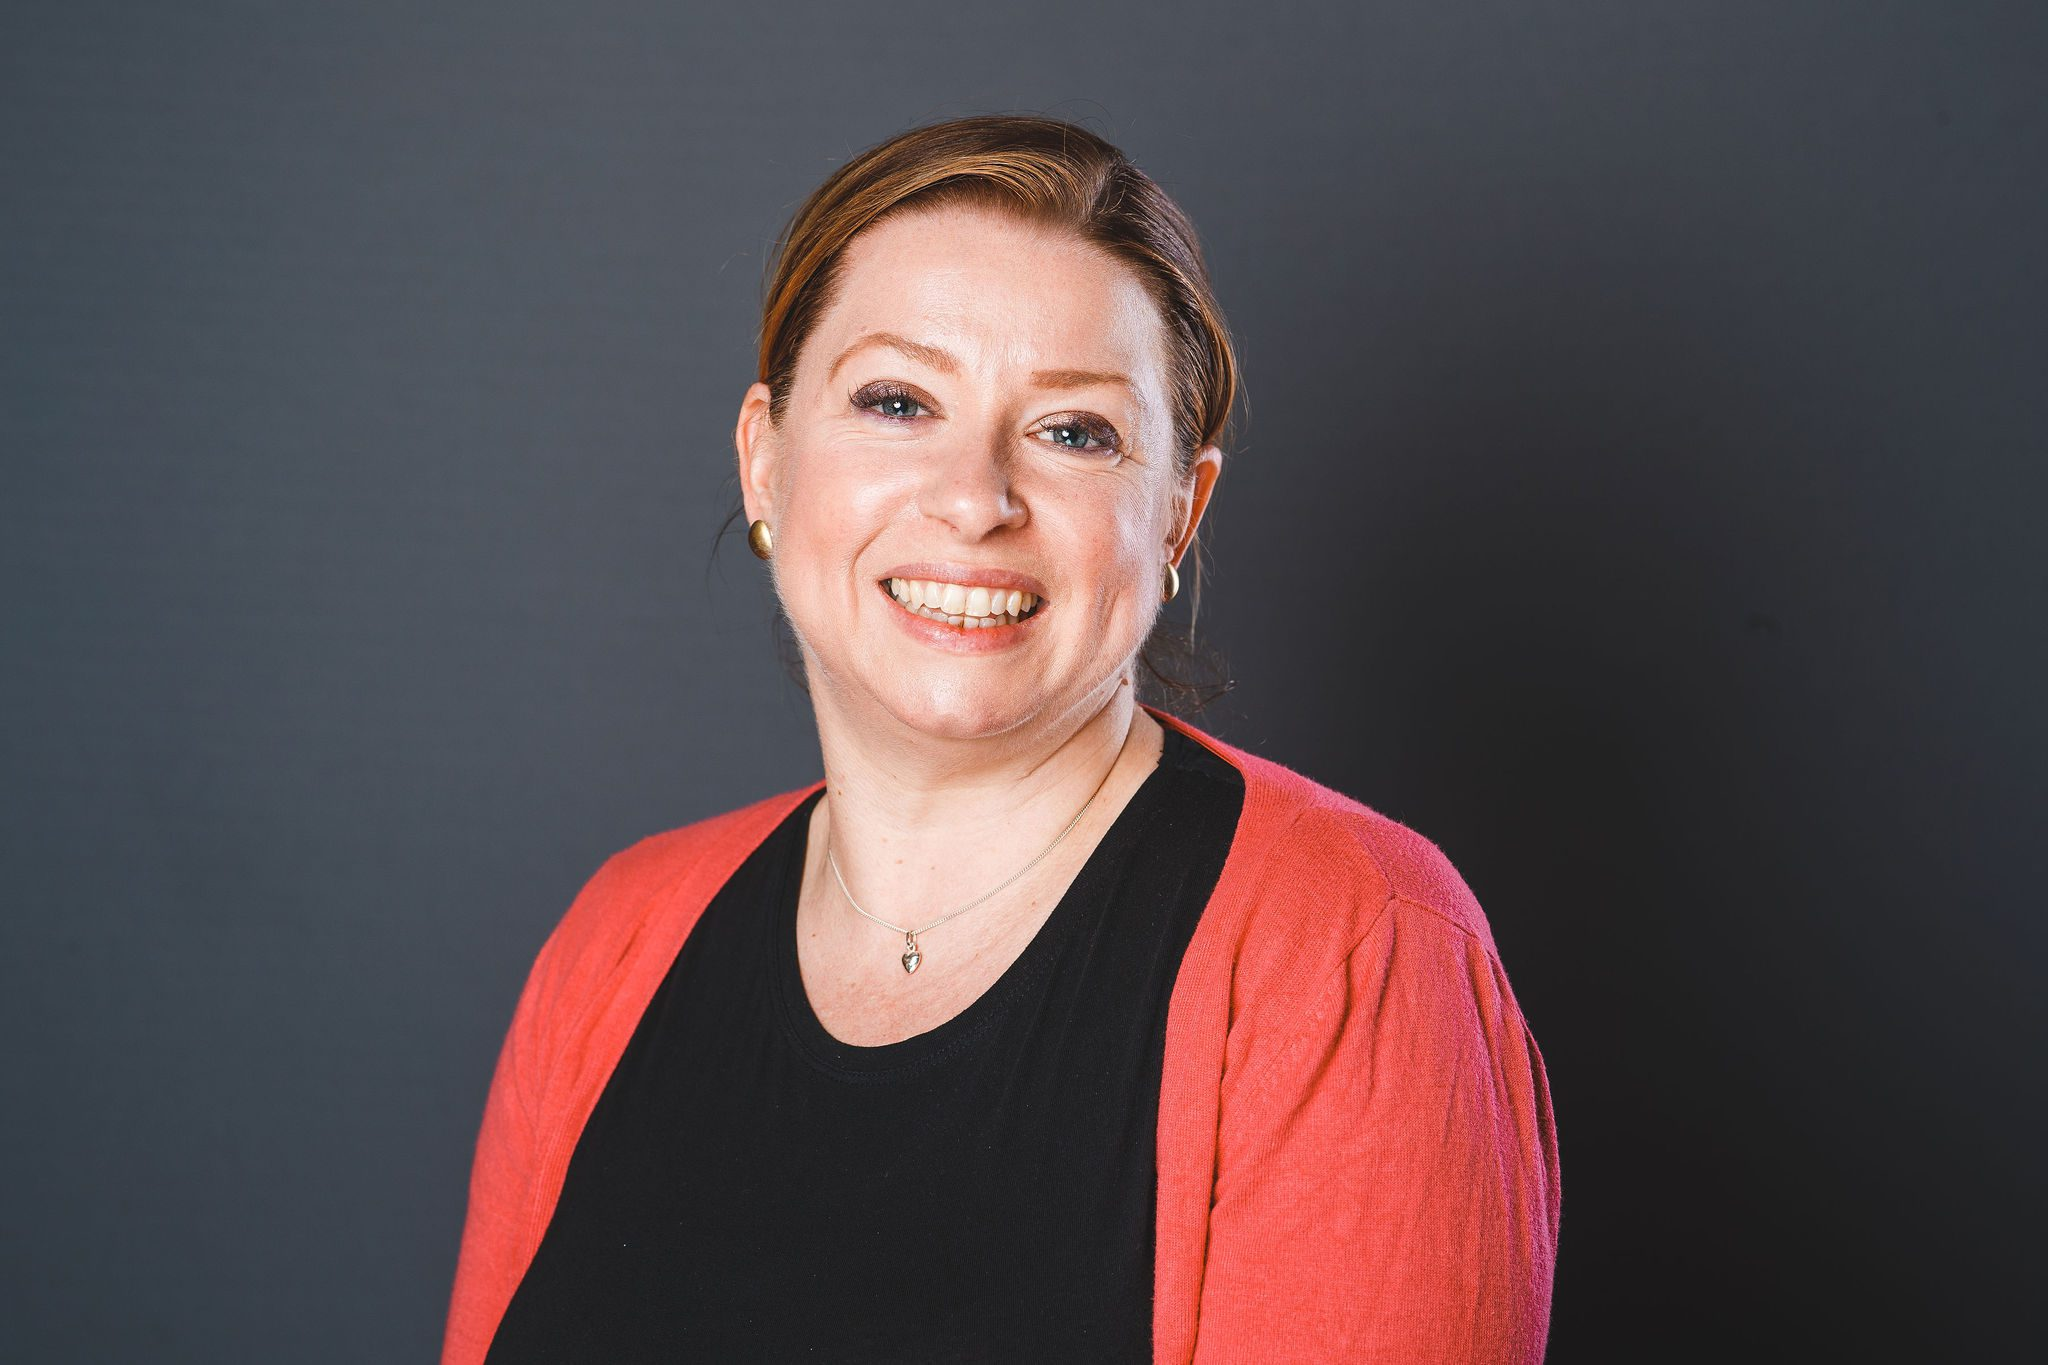 Abi Pattenden, Manager of Freeman Brothers Funeral Directors